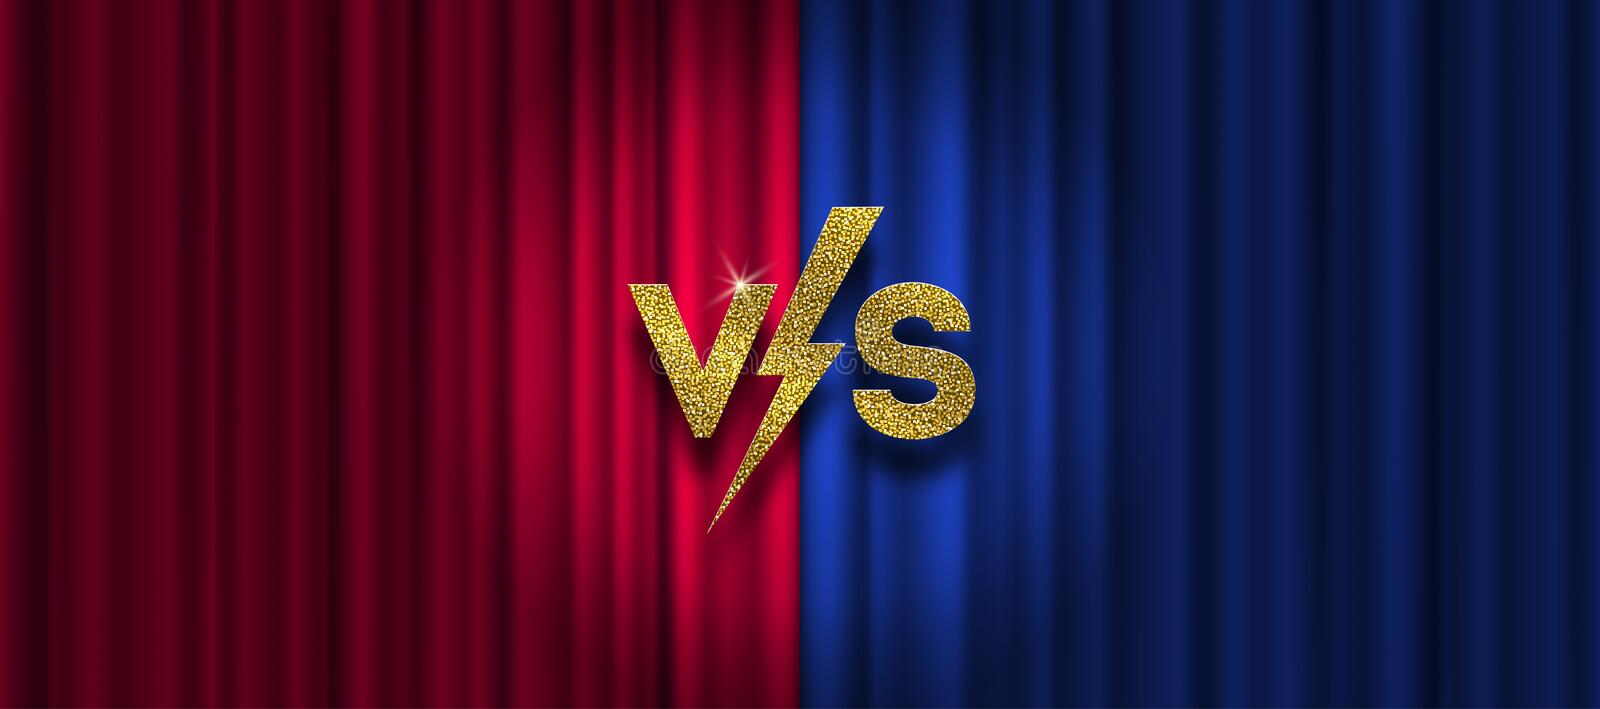 Glitter gold versus logo on red and blue curtain background. VS logo for games, battle, performance, show, vector illustration